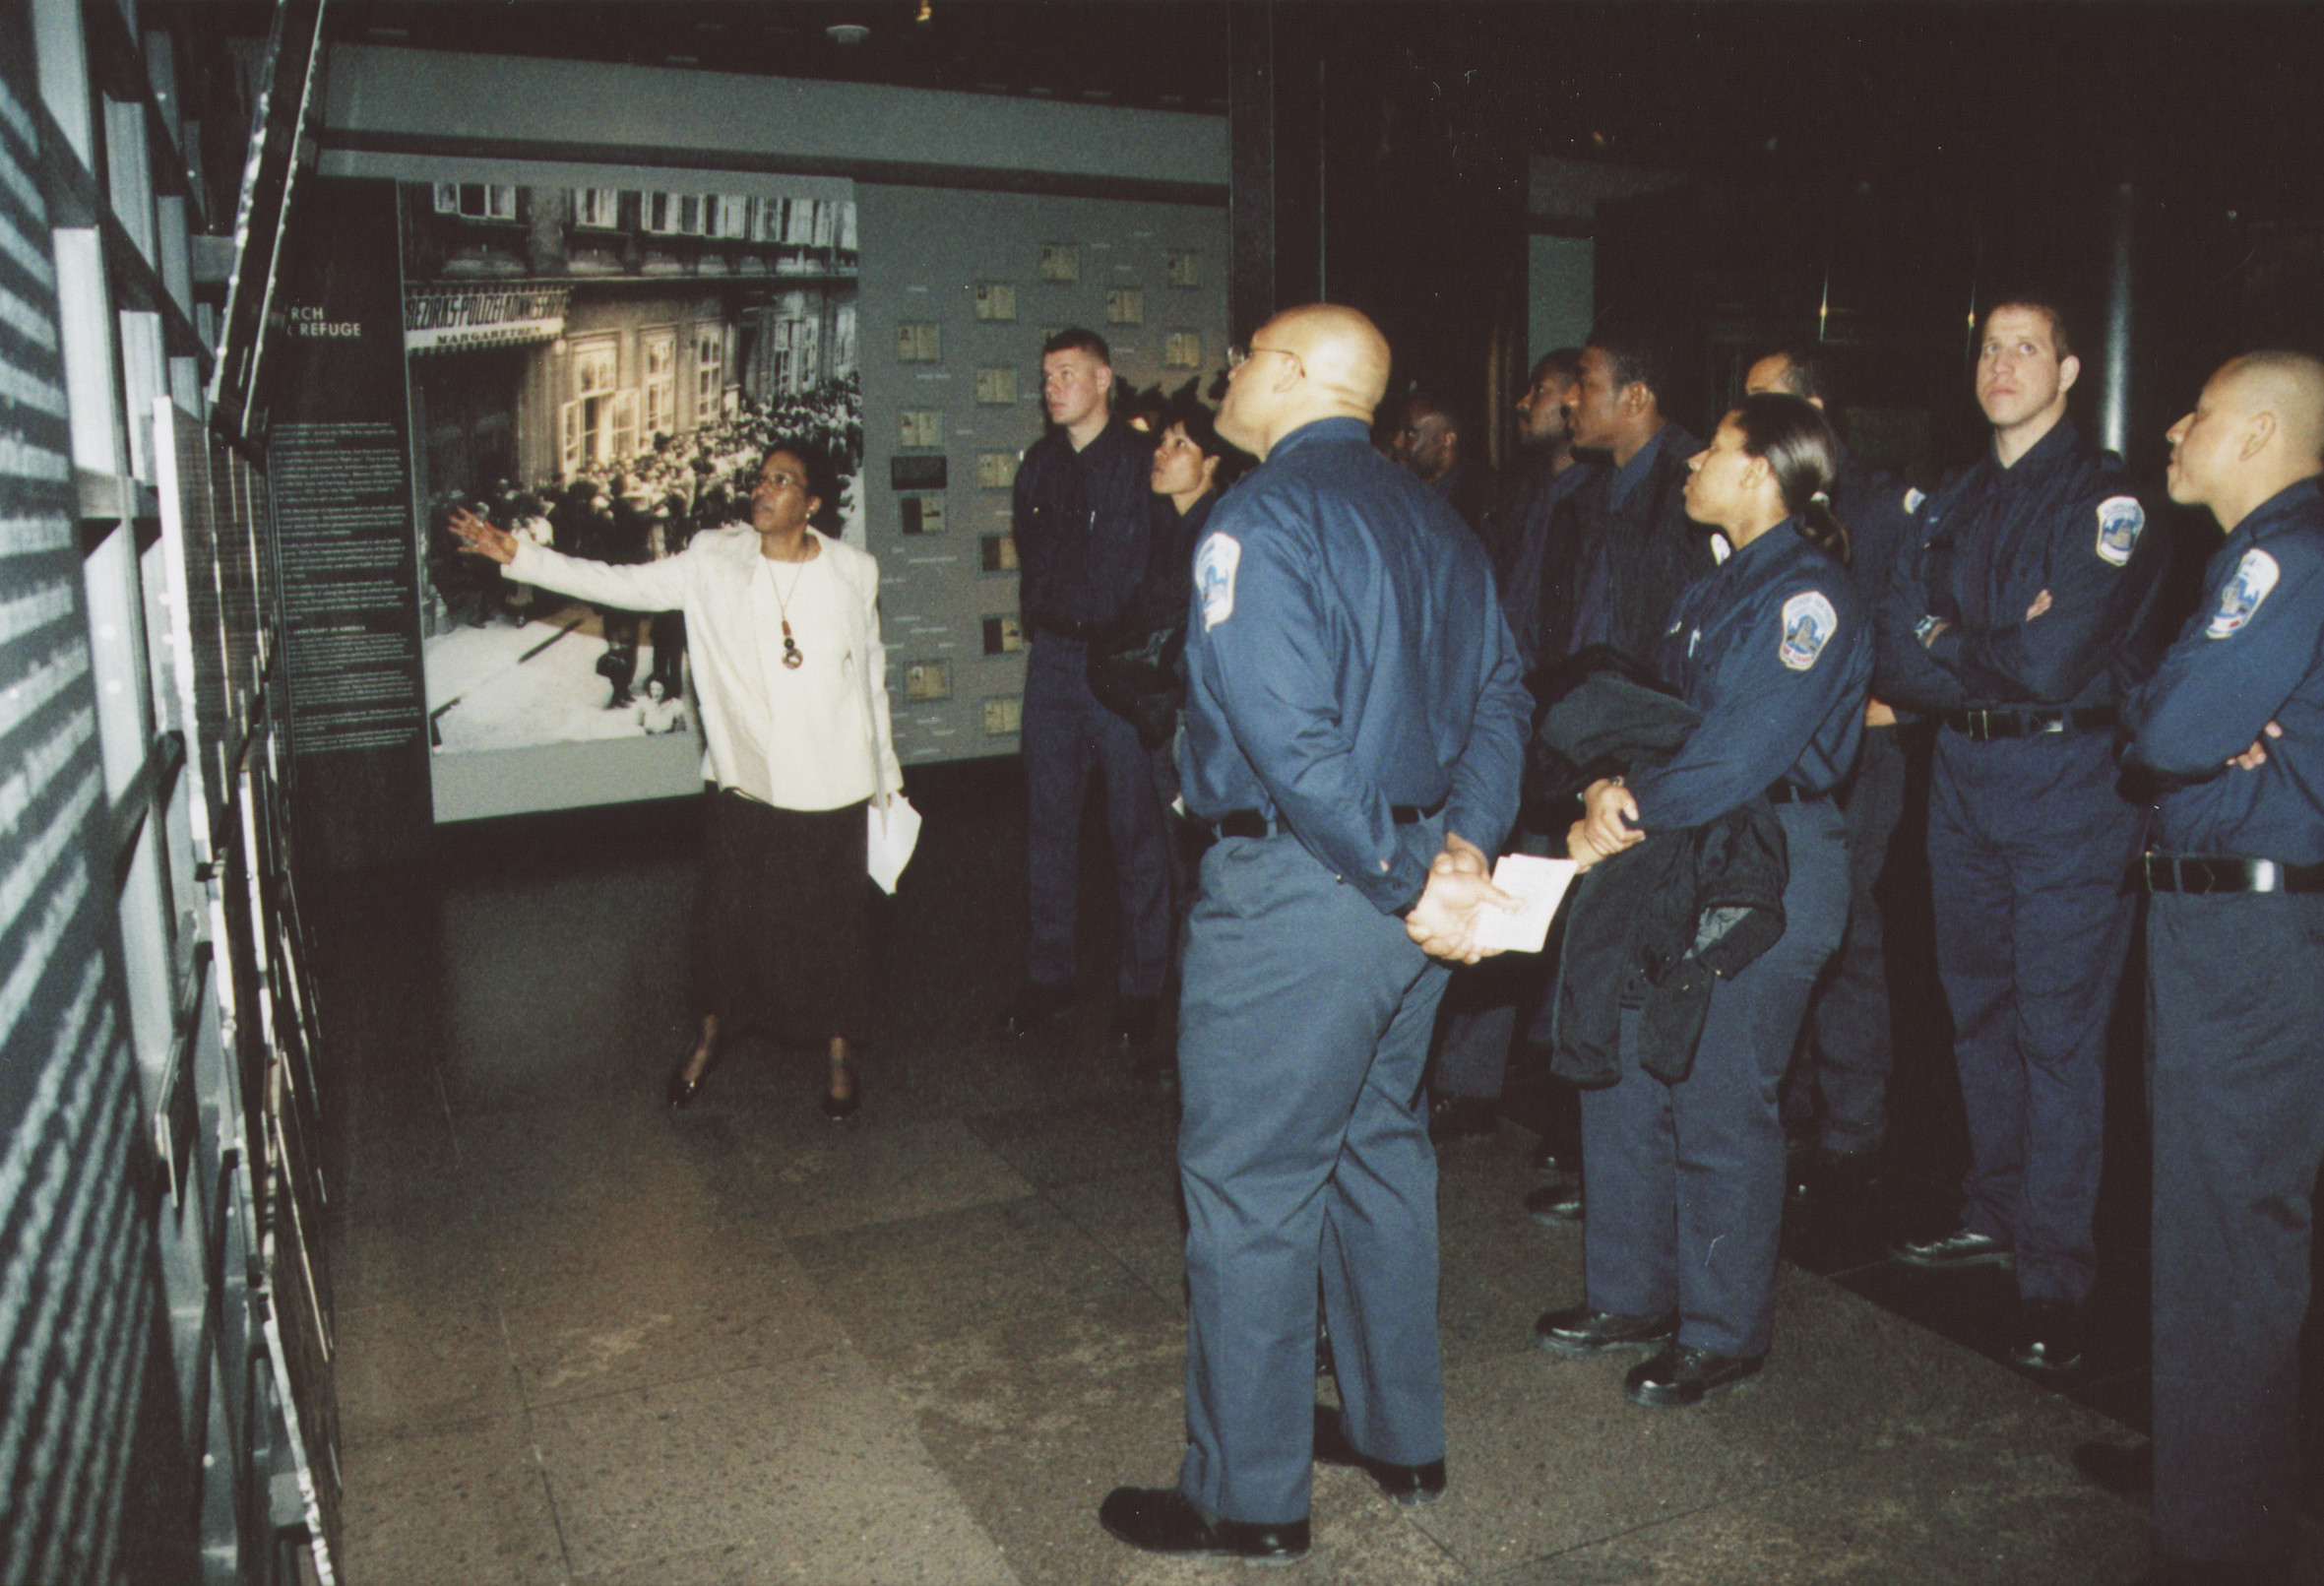 DC police training squad visits the U.S. Holocaust Memorial Museum.  Lynn Williams guides a tour through the Permanent Exhibition.